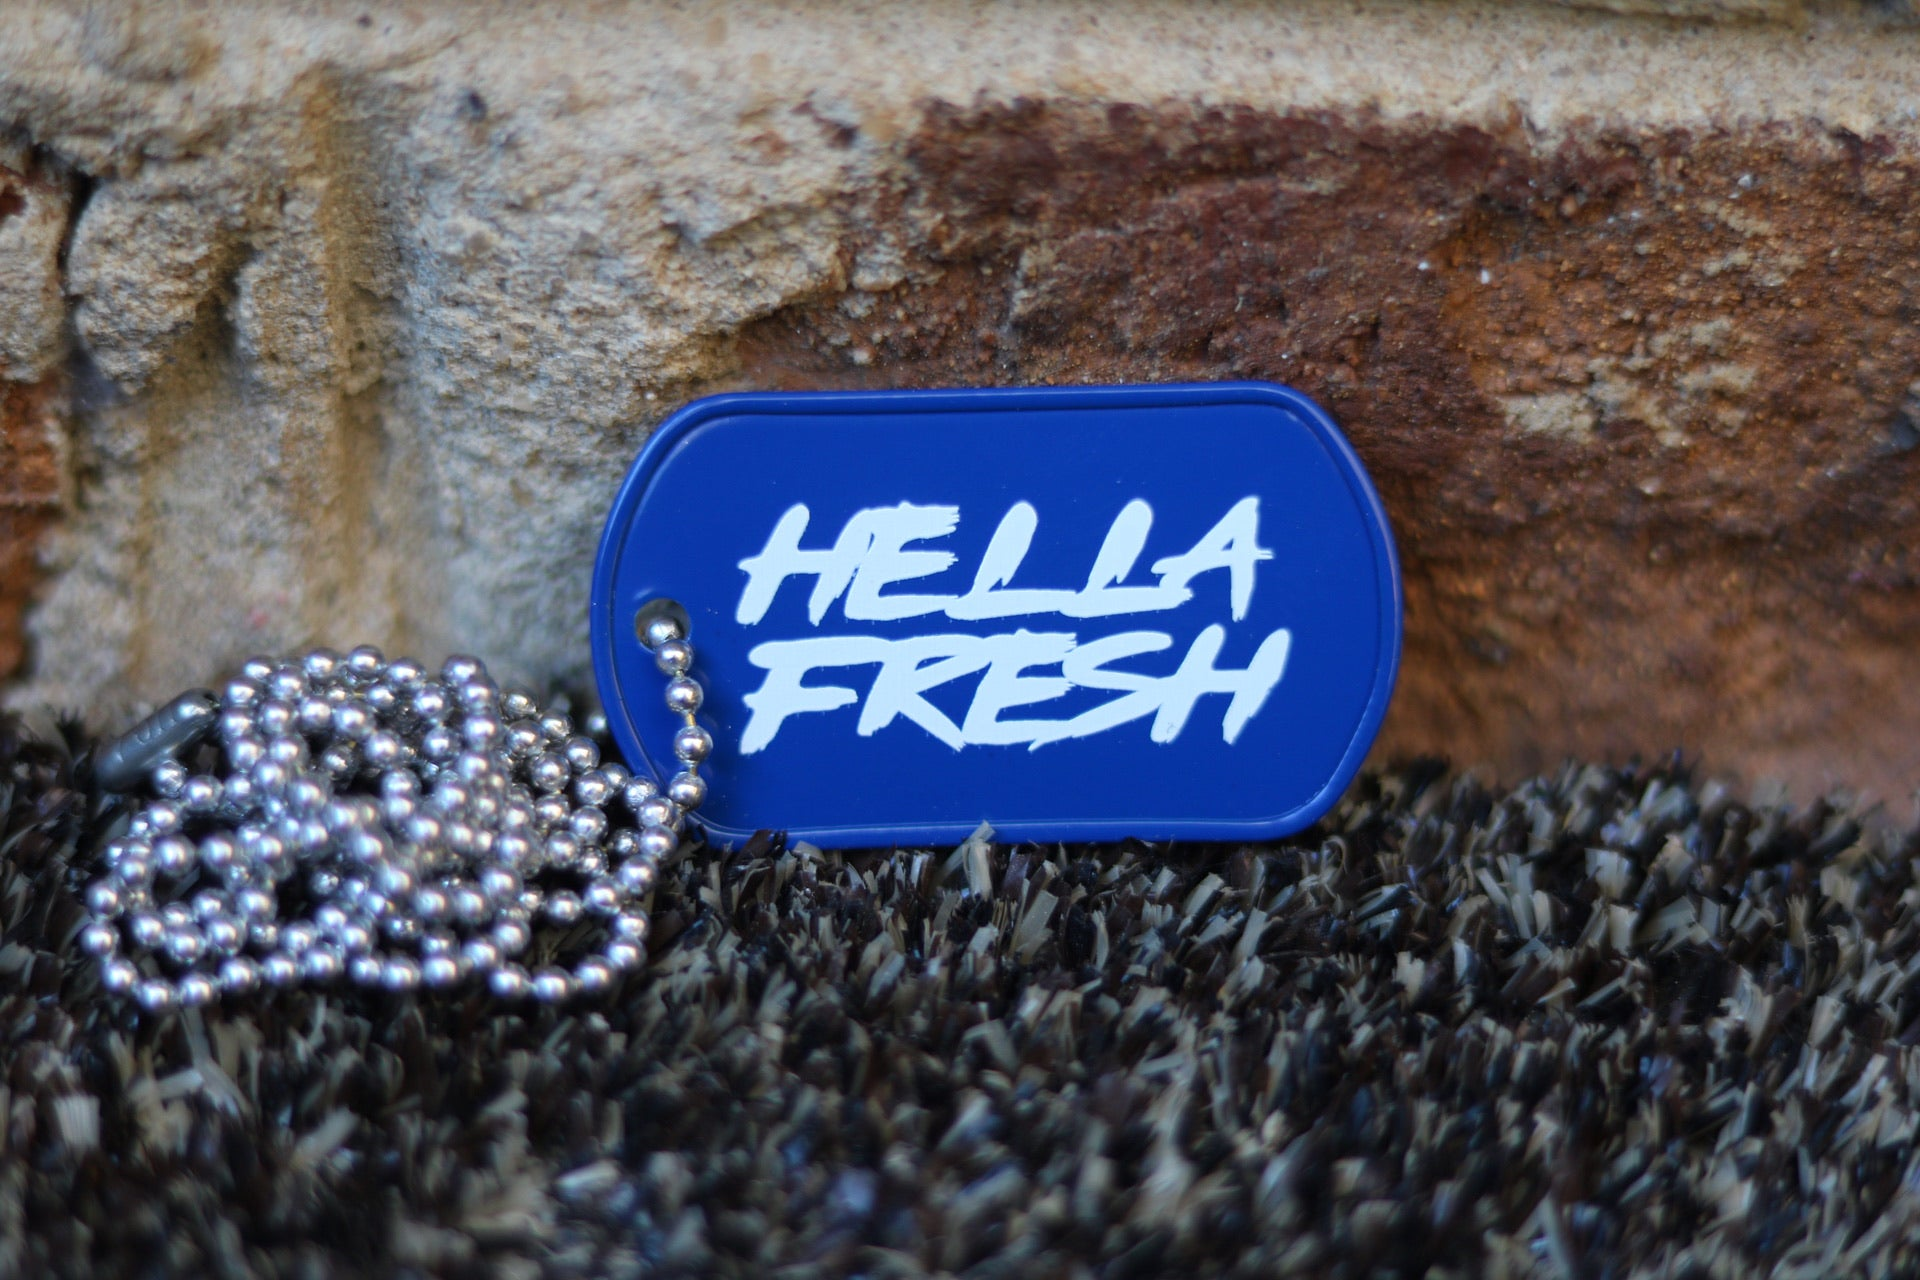 HELLA FRESH Dog tag